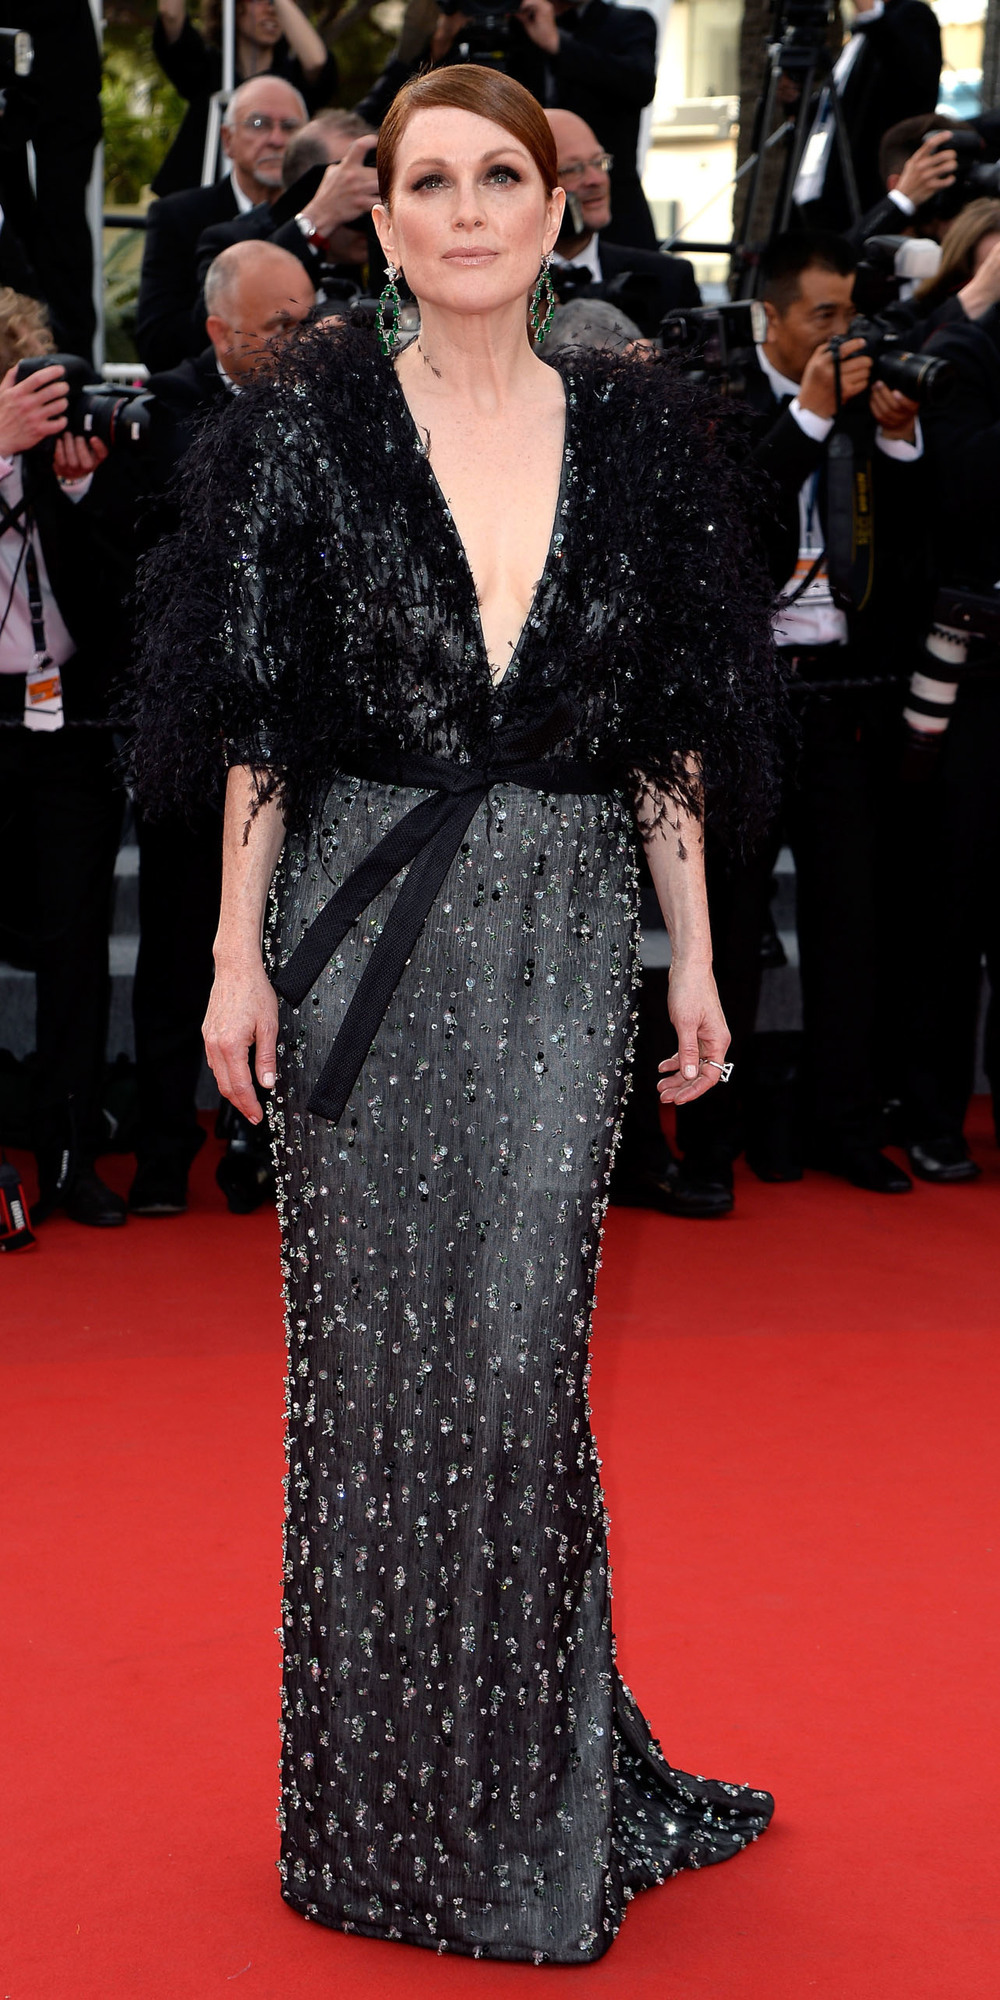 I think Julianne Moore looked magnificent in Armani Priveé, which is always perfect for the red carpet. But both her looks, the other by Givenchy, were a little too much on the wintery side.